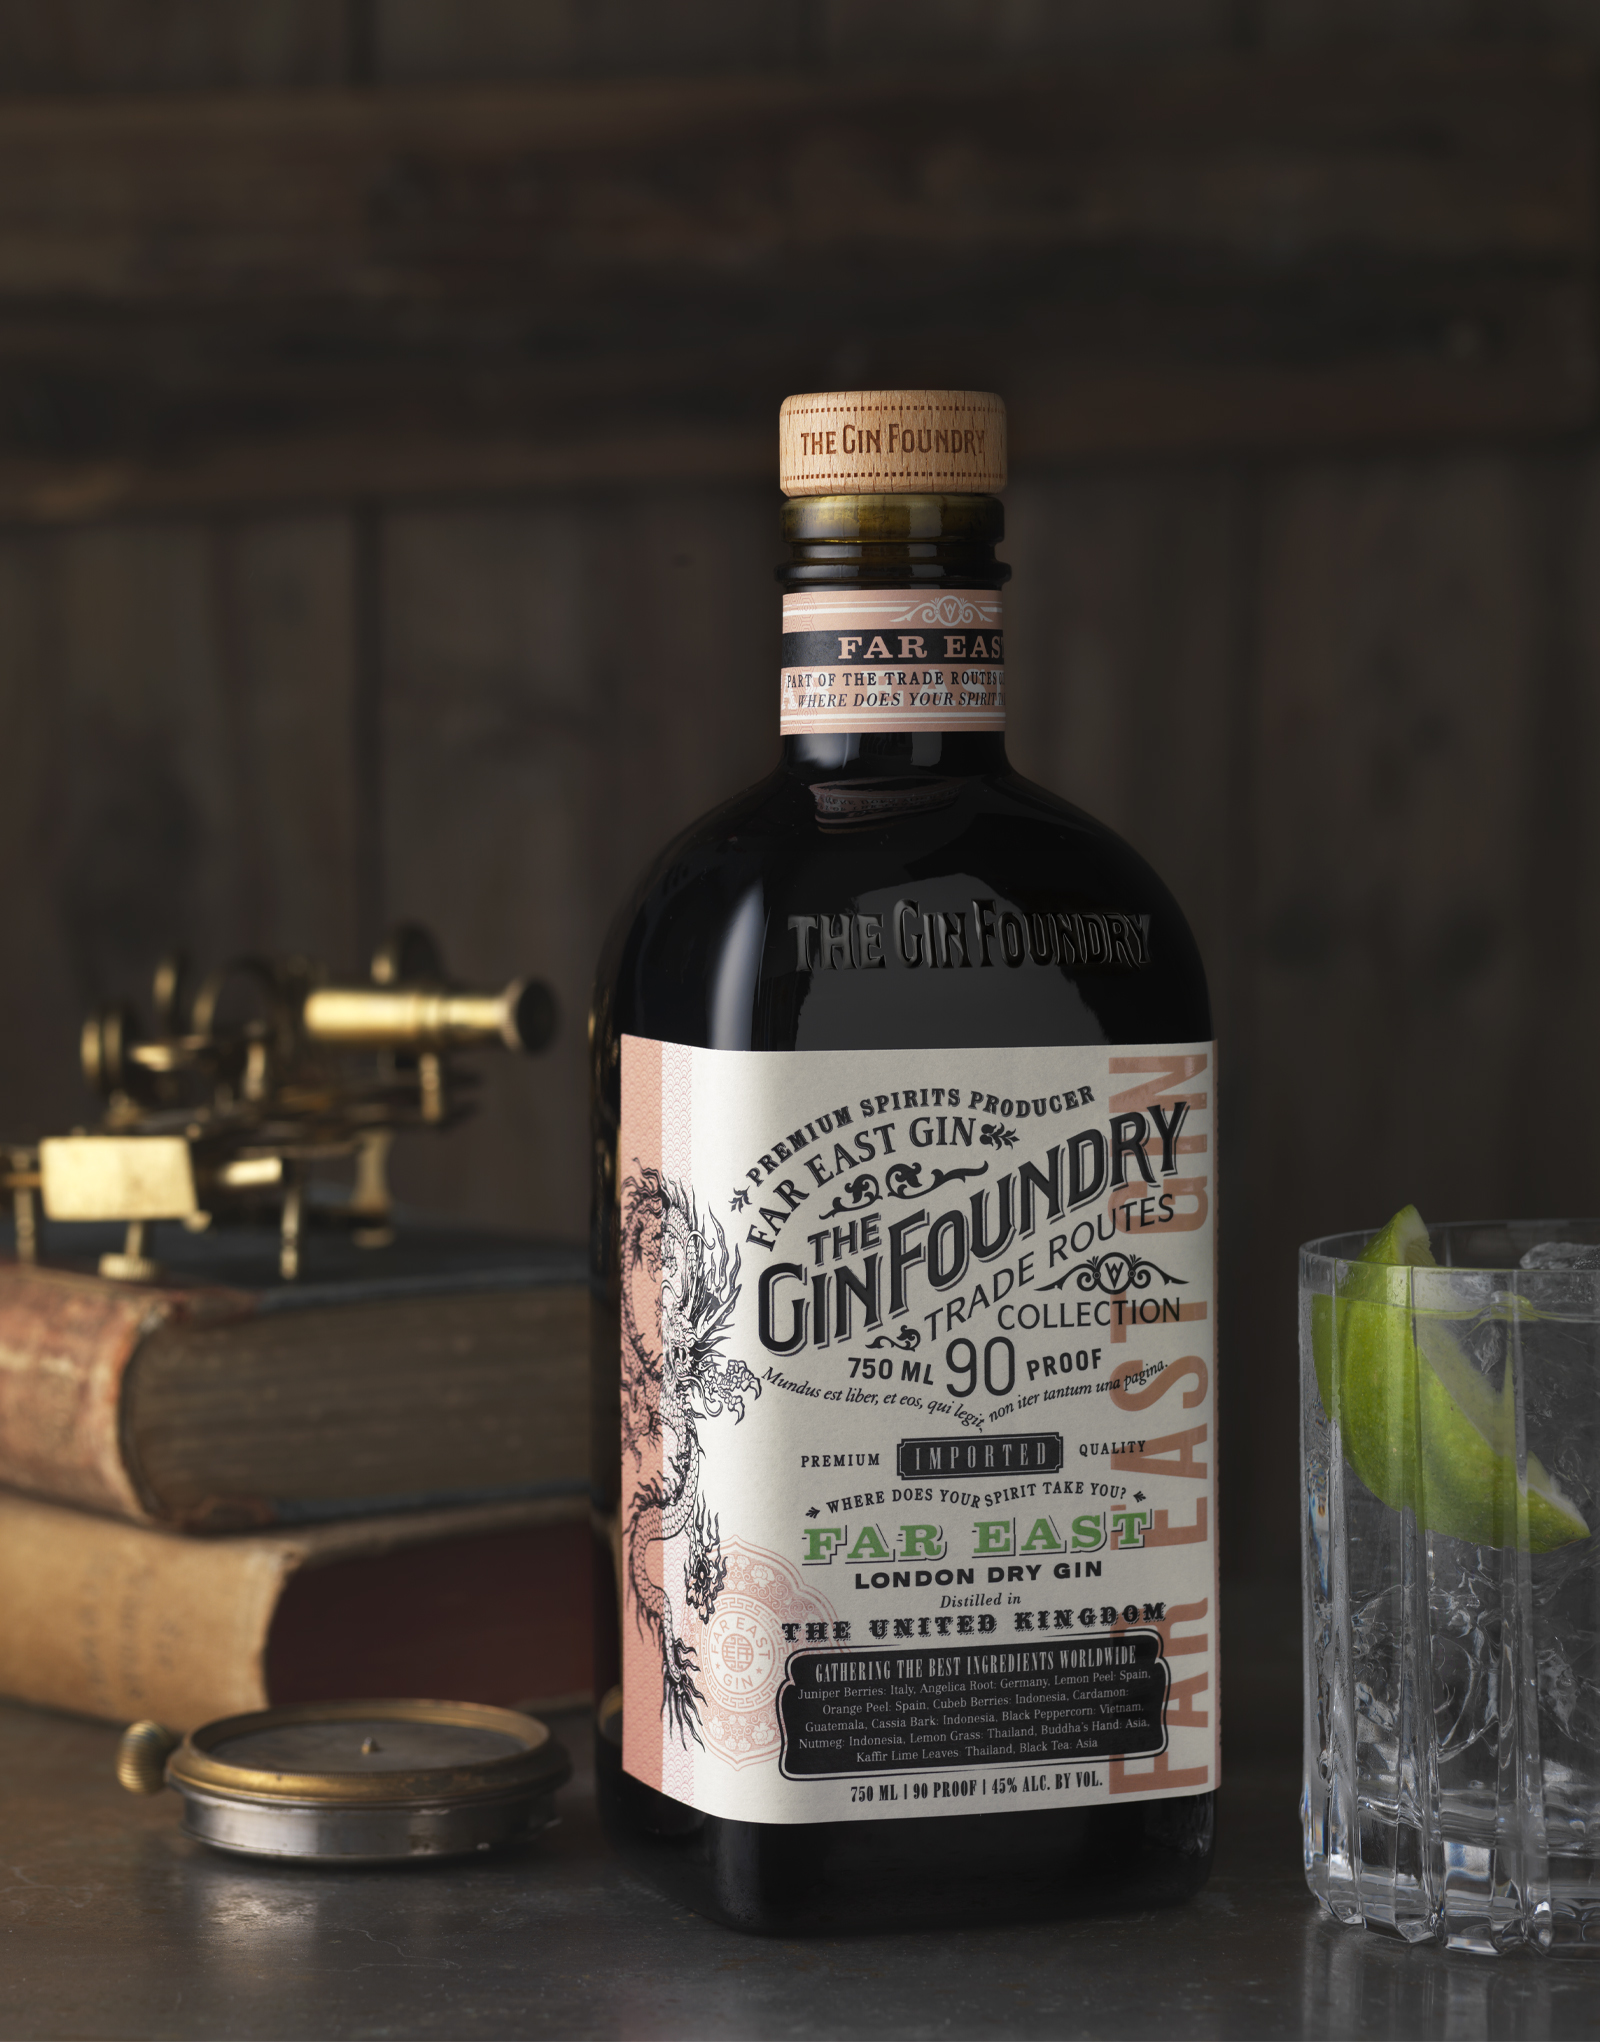 The Gin Foundry Far East Gin Packaging Design & Logo